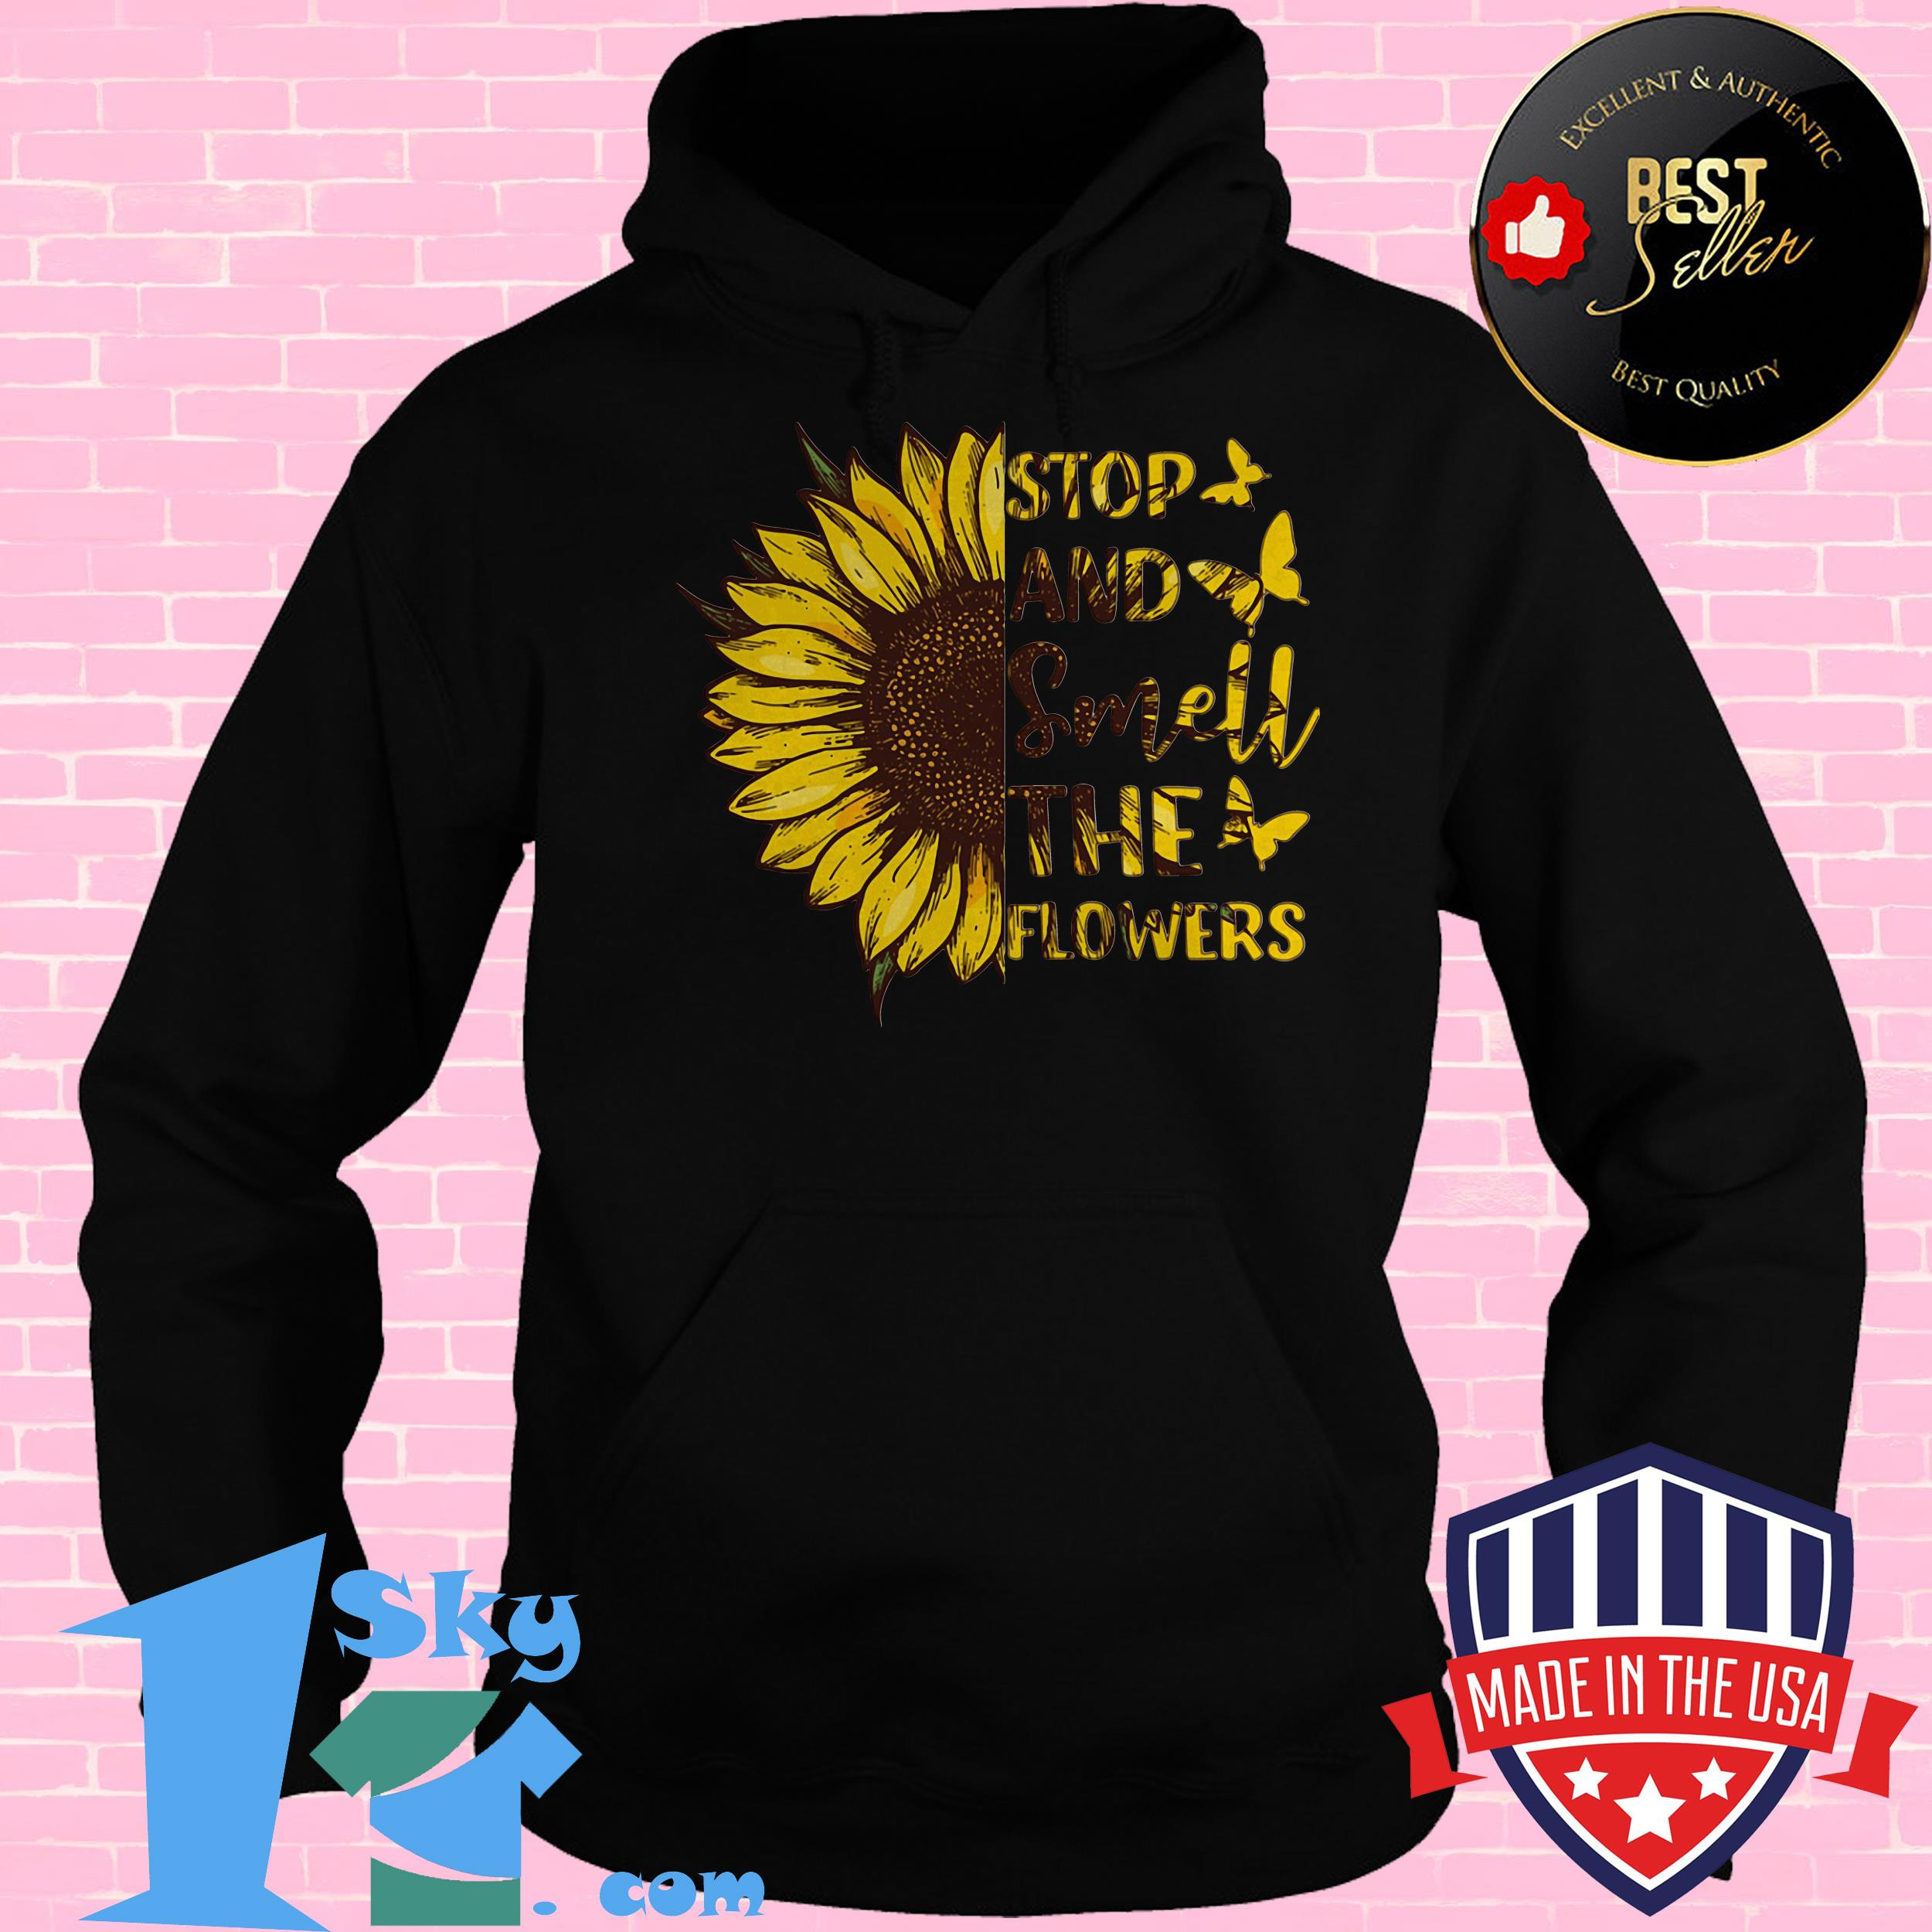 butterfly and sunflower stop and smell the flowers hoodie - Butterfly and Sunflower Stop And Smell The Flowers shirt